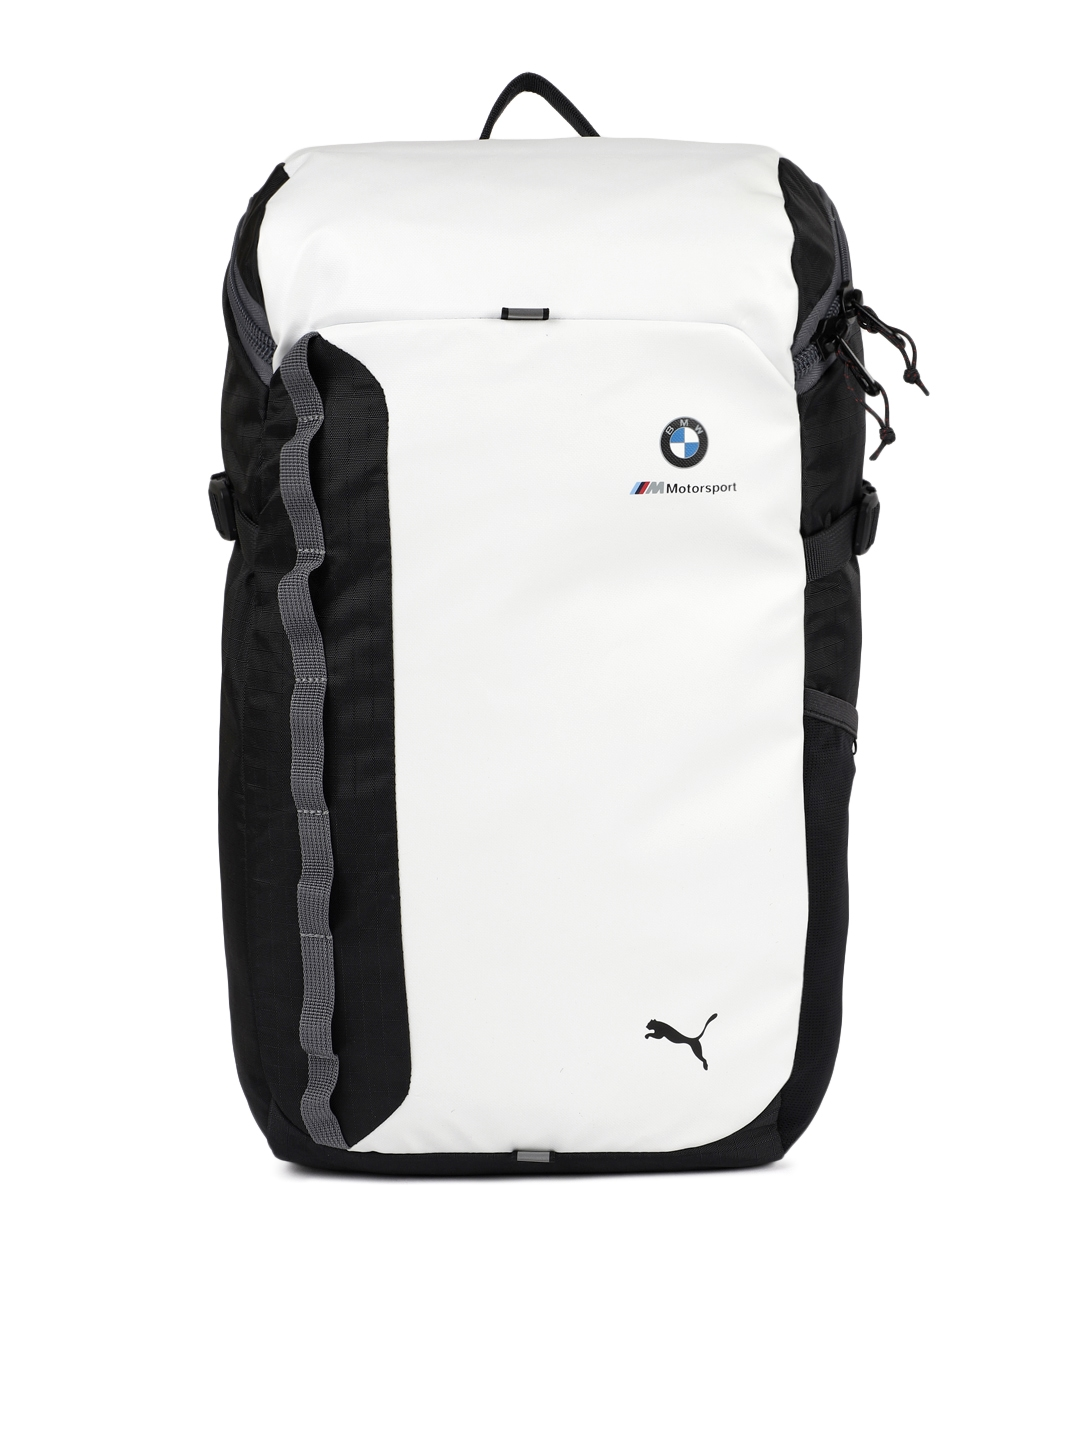 b48141a5f49 Puma Unisex White & Black BMW M MSP Laptop Backpack. This product is  already at its best price